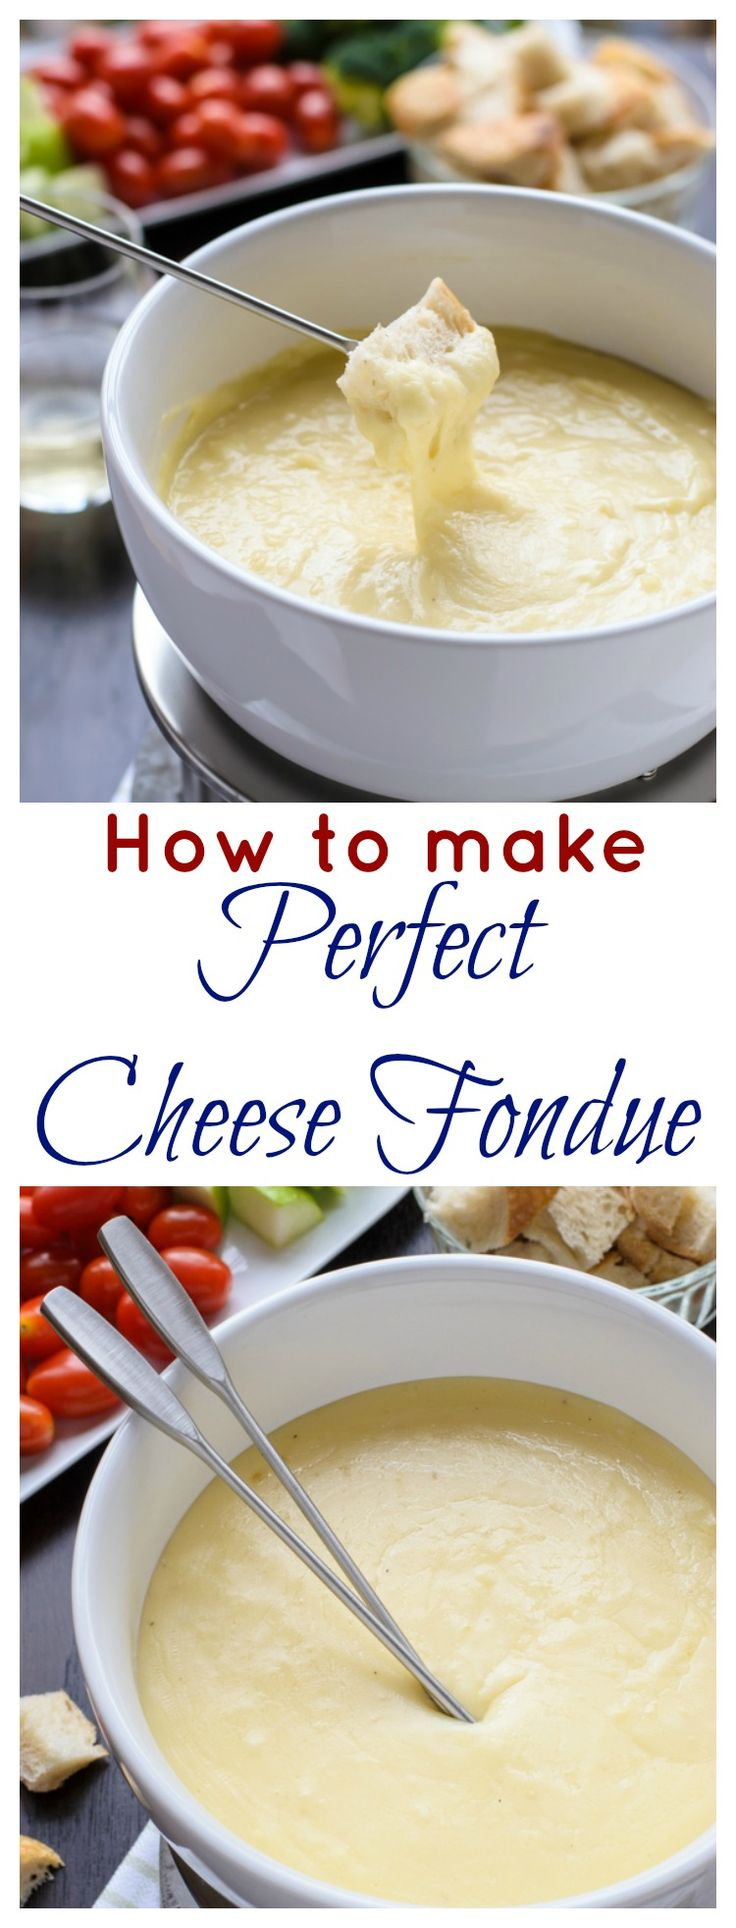 The perfect New Year's Eve party idea! Three Cheese Fondue. A classic cheese fondue recipe, ideas for fondue dippers, and how to make the perfect cheese fondue every time.